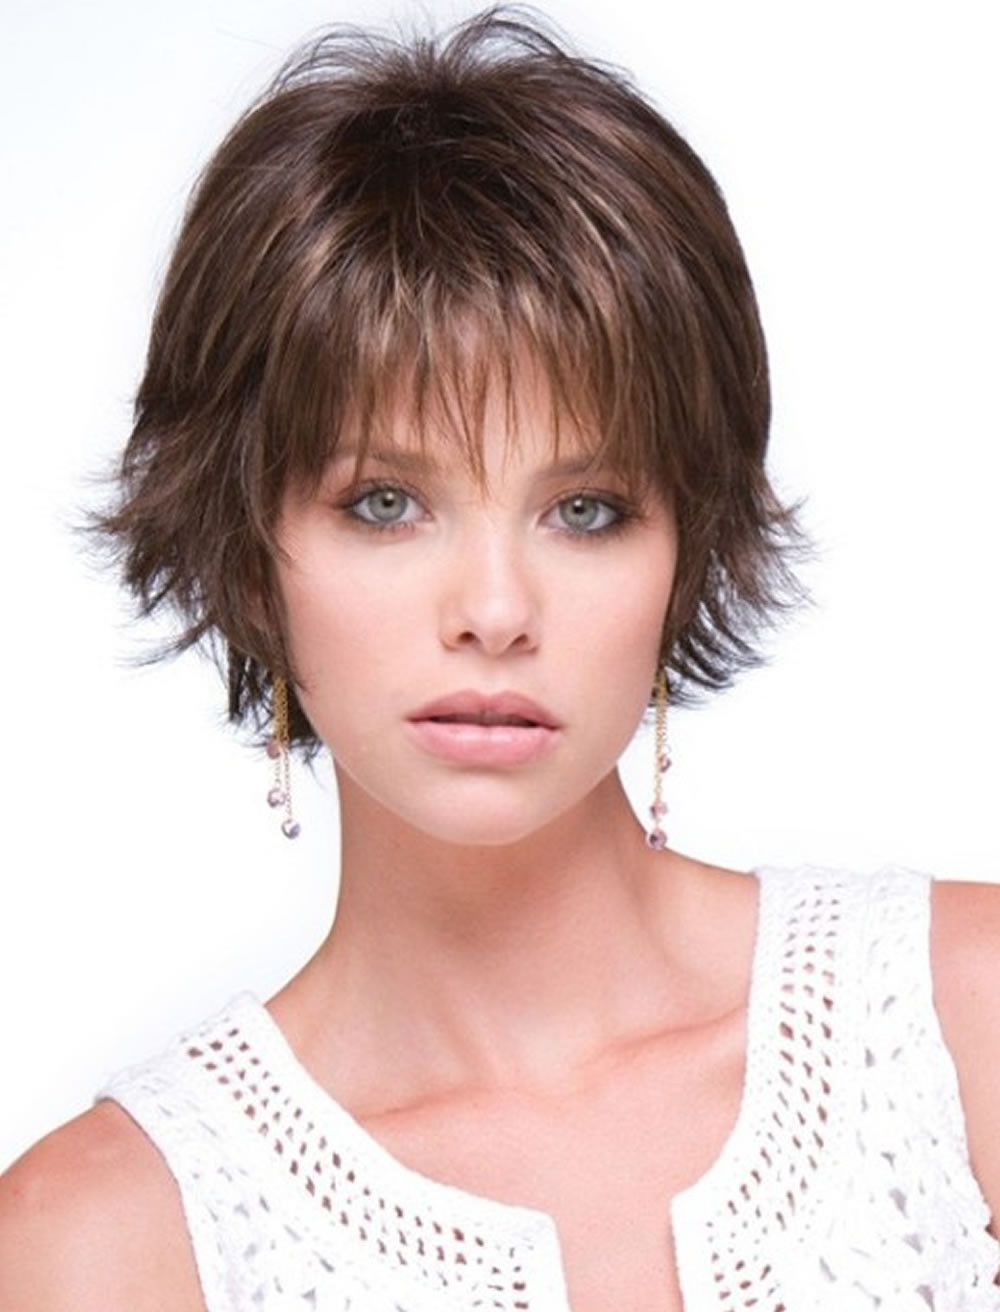 Short Haircuts For Round Face Thin Hair Ideas For 2018 Inspirational Regarding Short Haircuts For Round Chubby Faces (View 19 of 25)